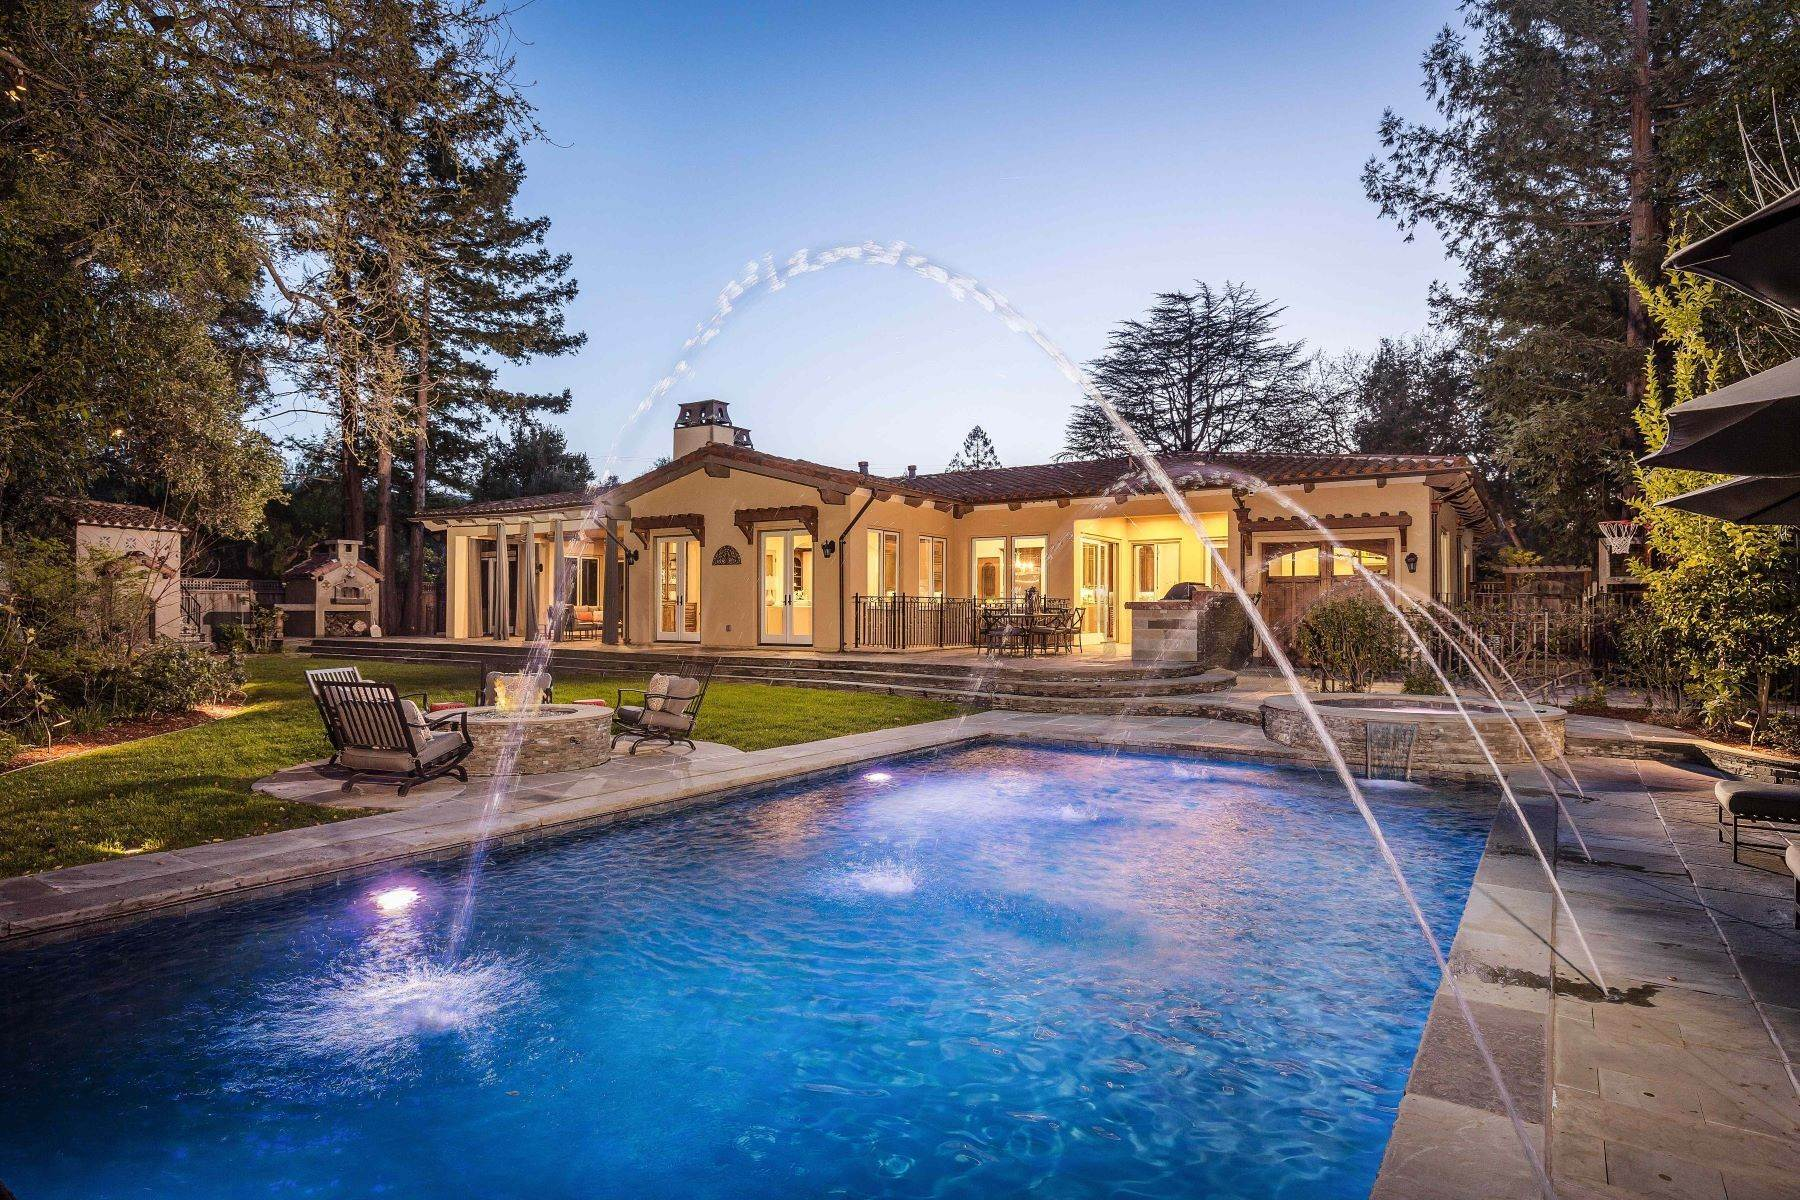 Single Family Homes for Sale at Prime Los Altos Location on a 1/2 Acre Lot with Pool 1061 Parma Way Los Altos, California 94024 United States